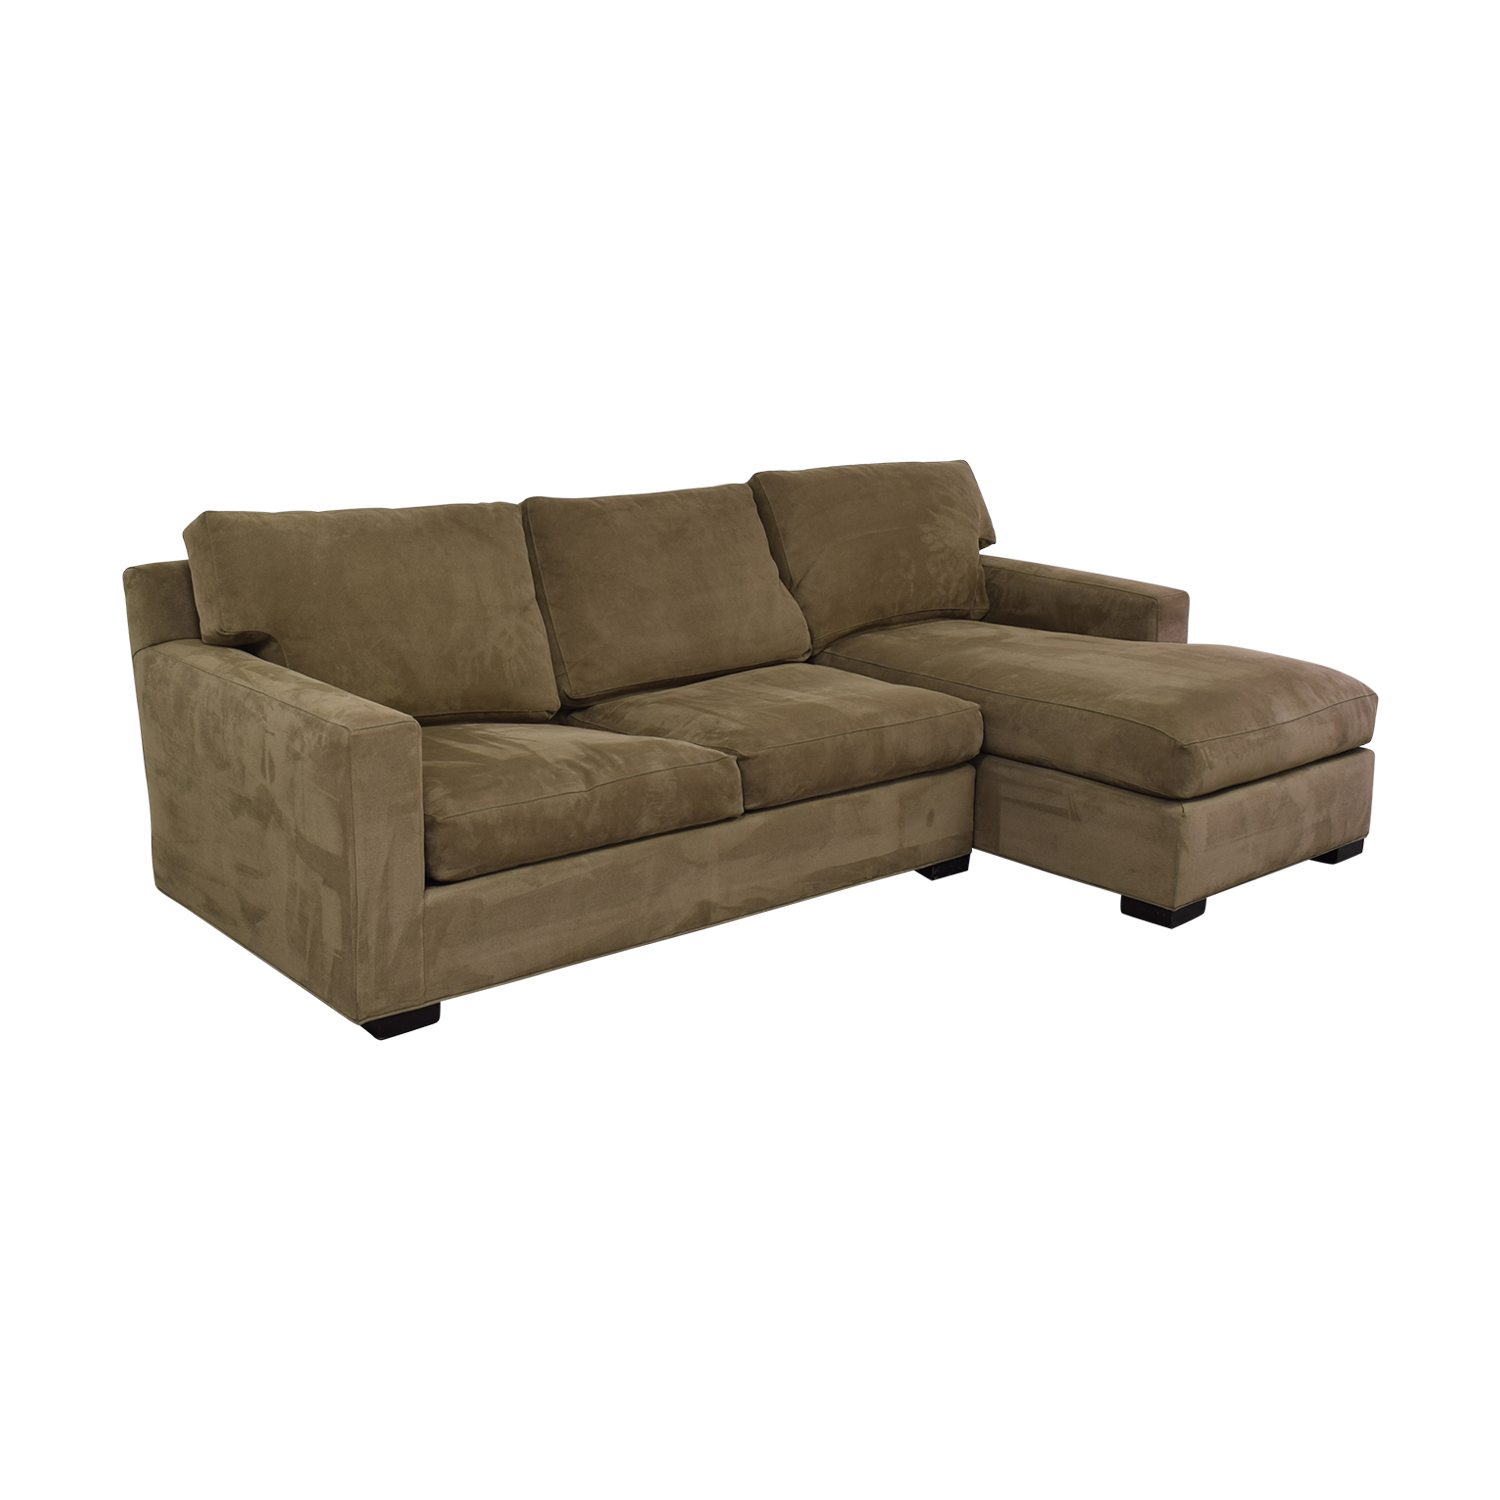 Crate & Barrel Crate & Barrel Axis II Sleeper Sectional for sale